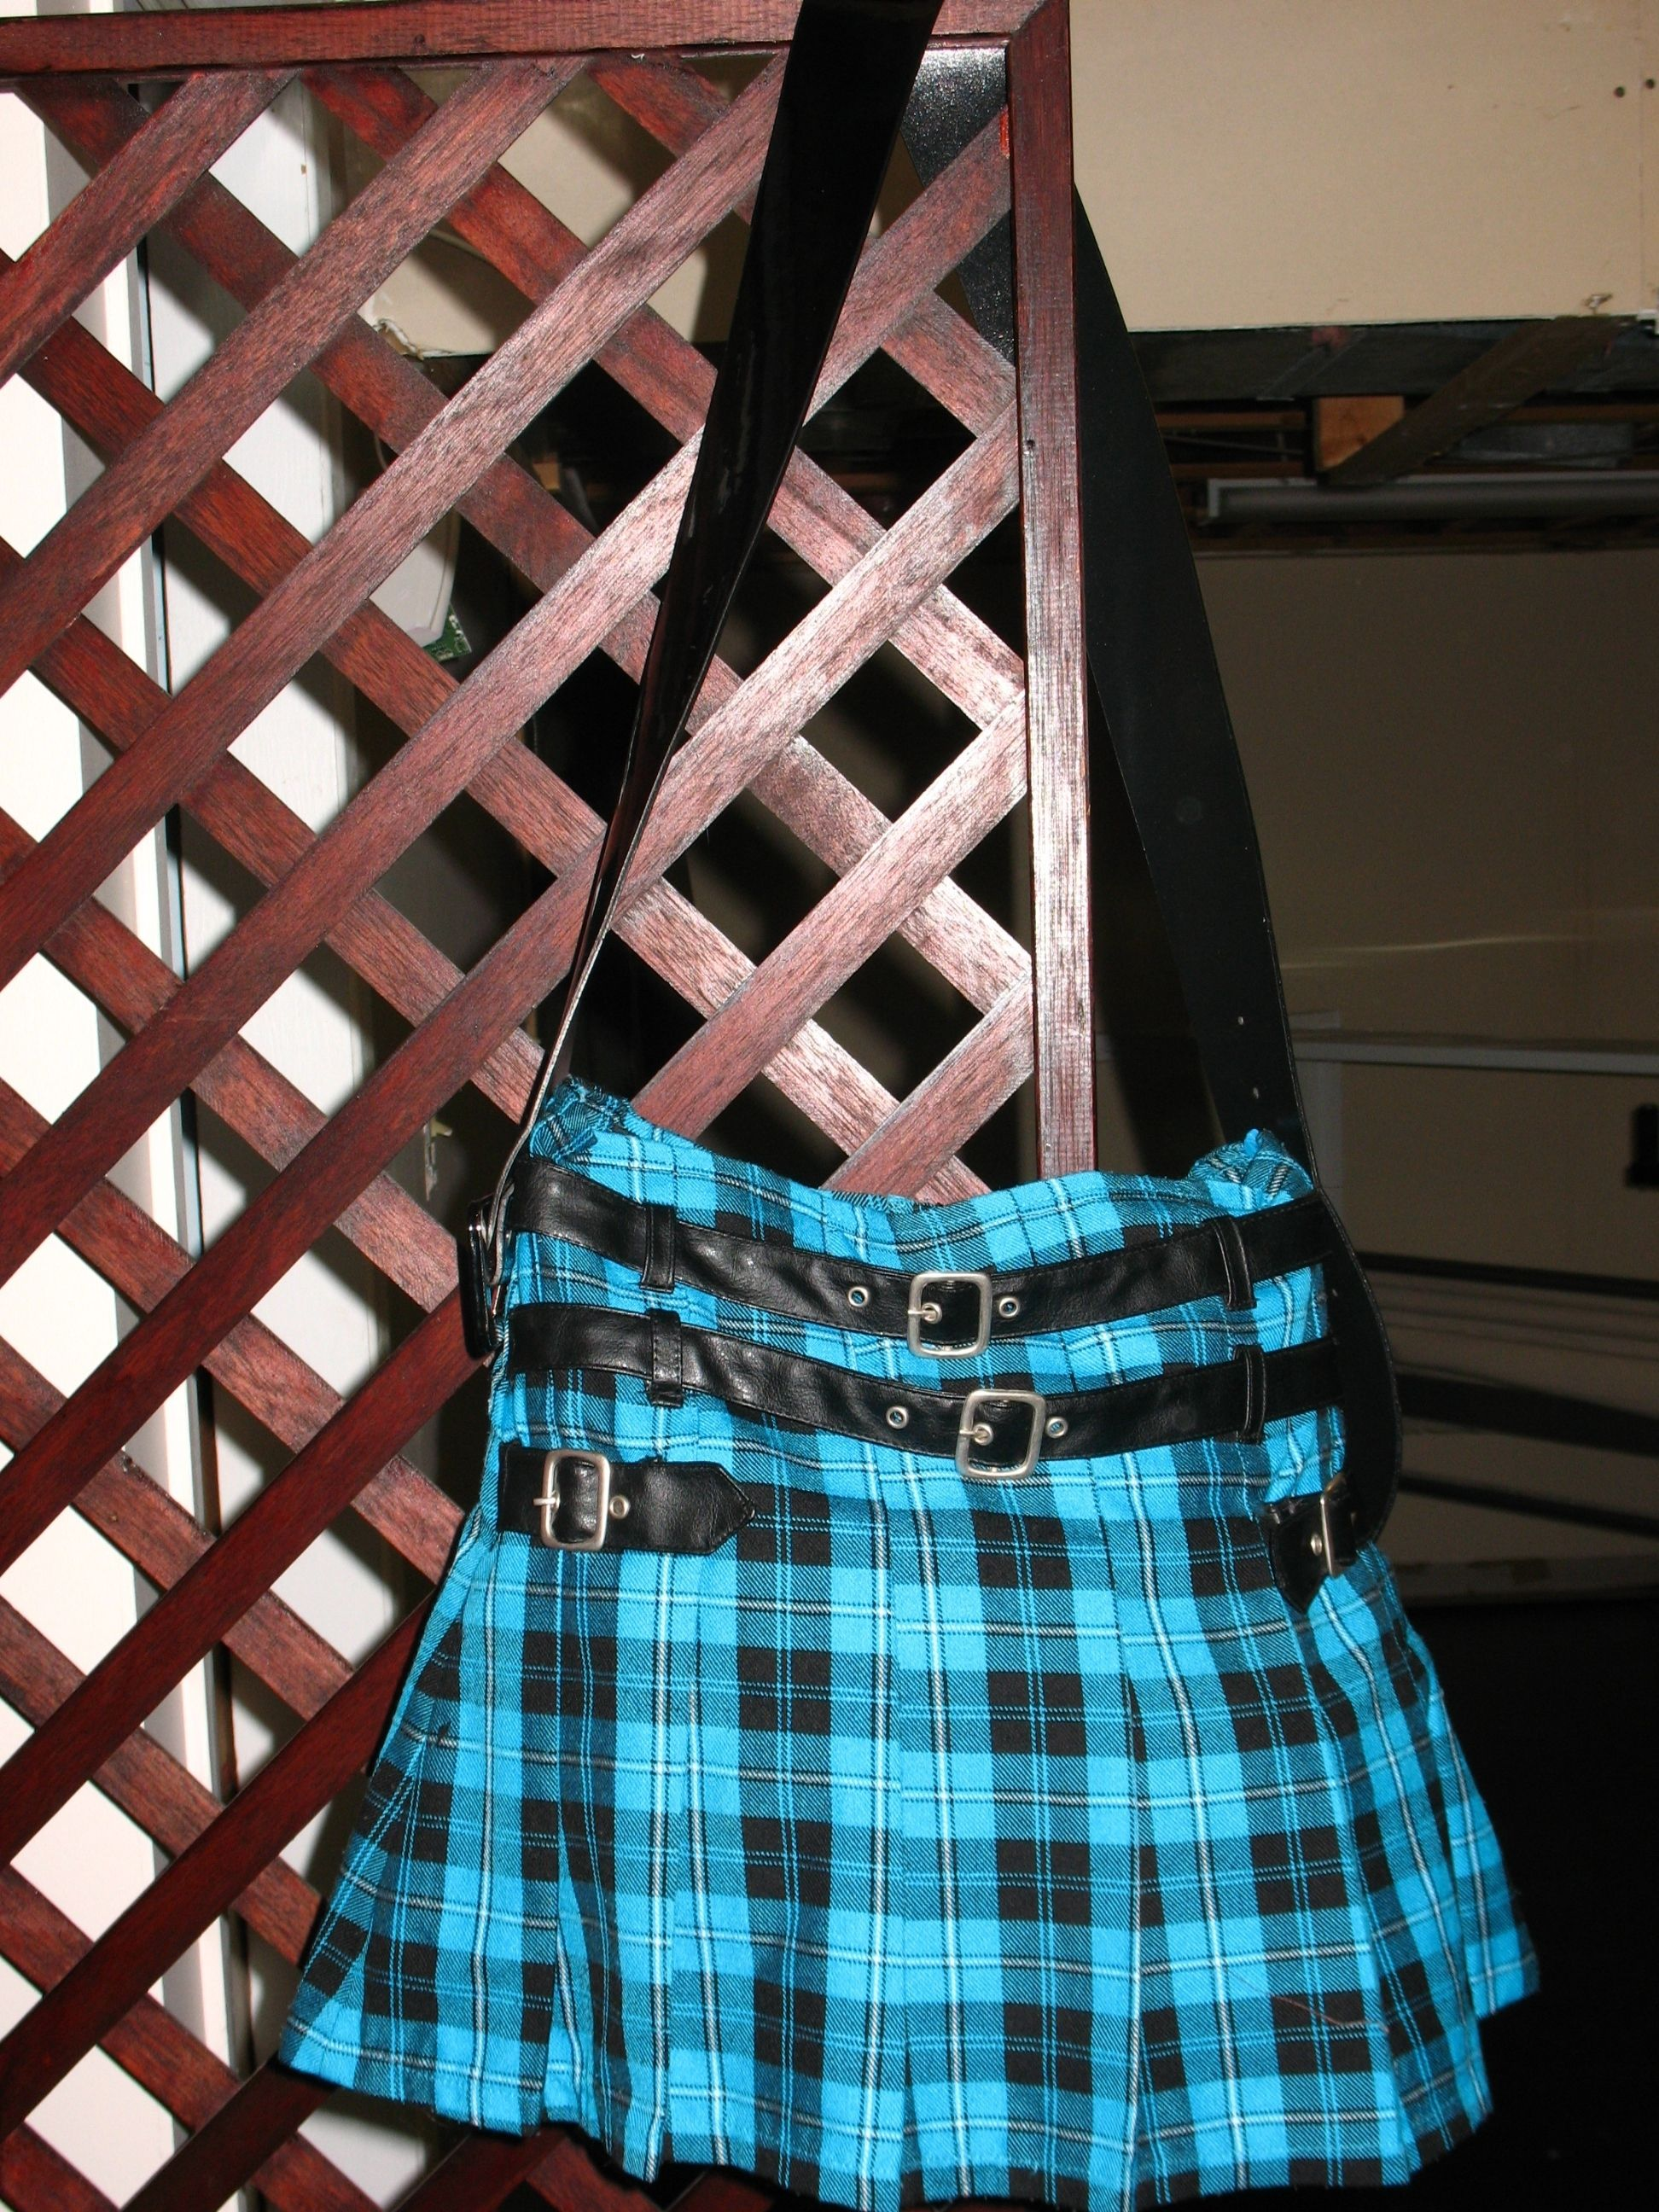 Made with a girls plaid skirt.